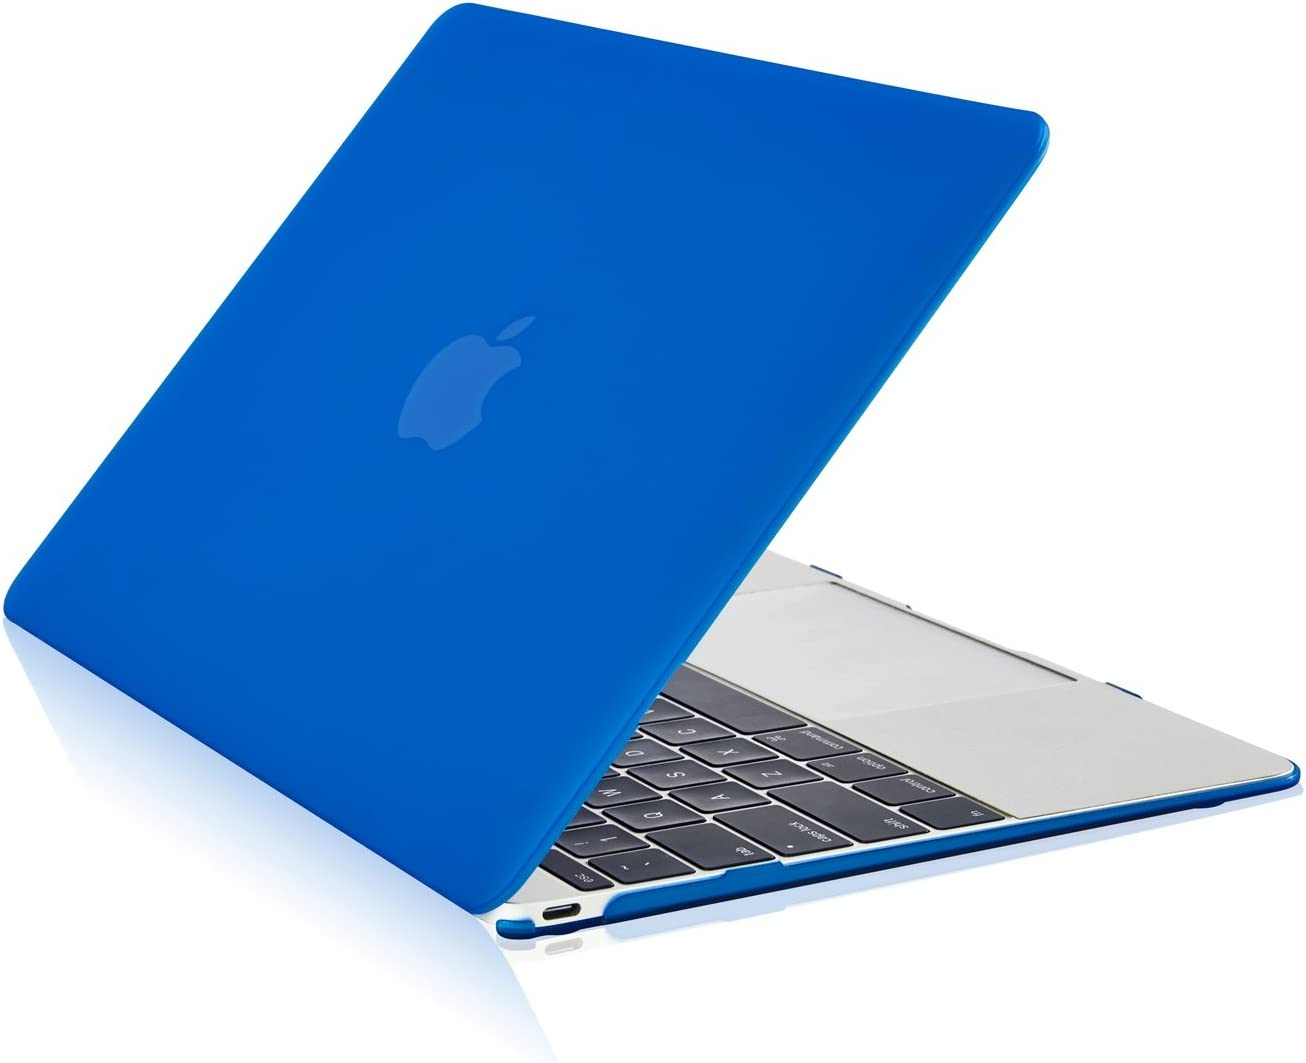 """TopCase - Apple The MacBook 12-Inch 12"""" Retina Display Laptop Computer Rubberized Hard Shell Case Cover for Model A1534 (Release 2015)"""